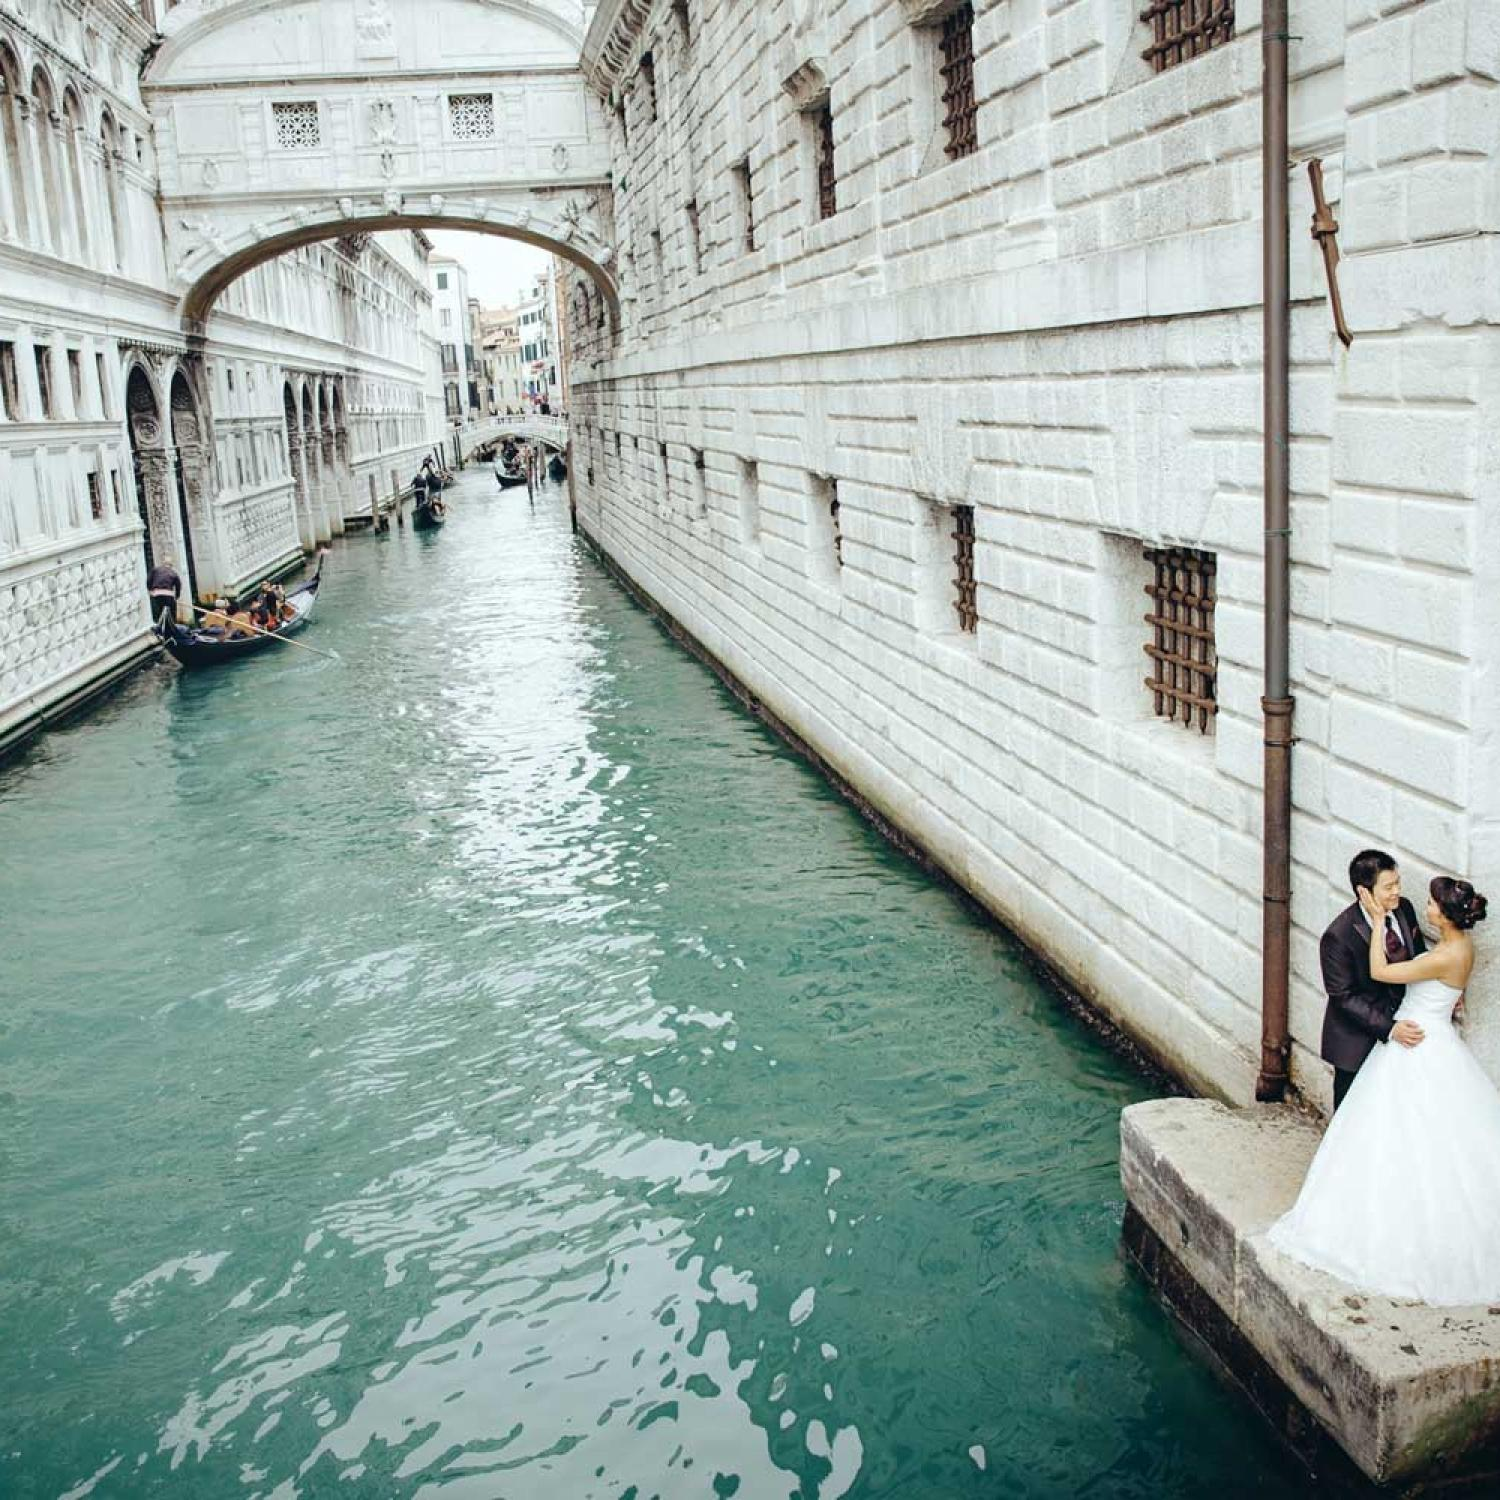 Couple posing next to the water canal in Venice